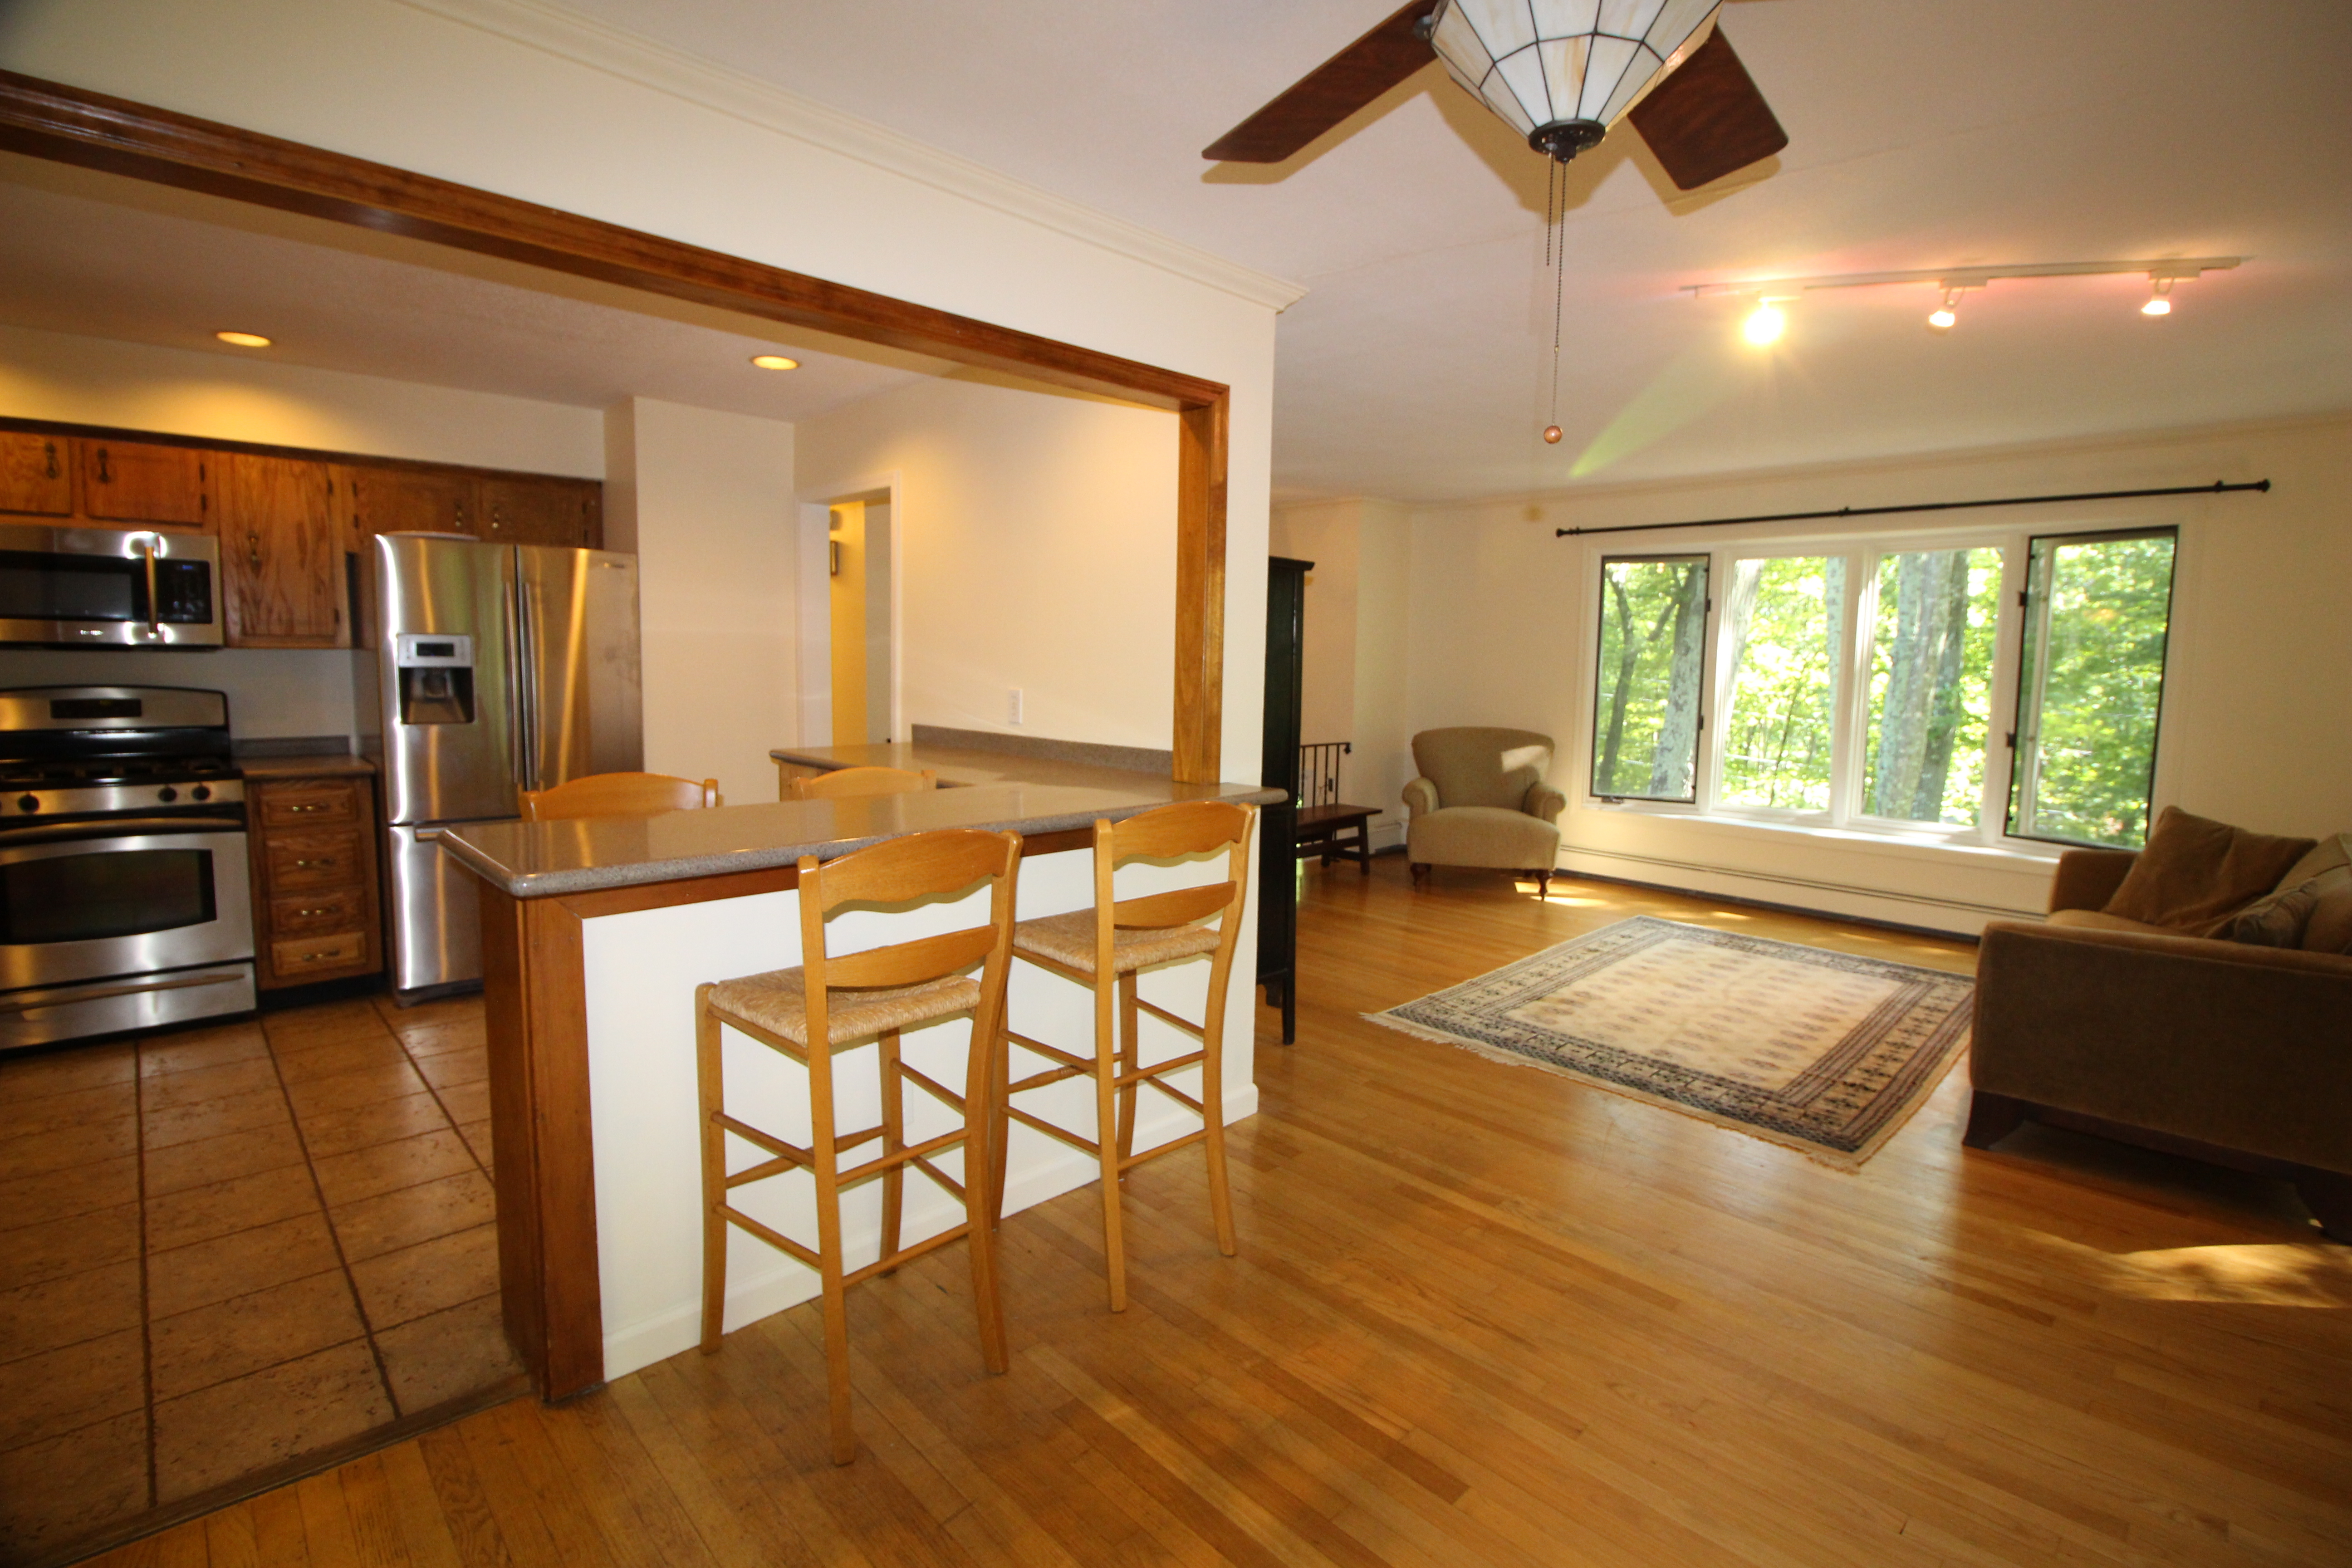 33 Dick Finn Road New Fairfield CT 06812 Candlewood Lake 2 Bath 3 Bed